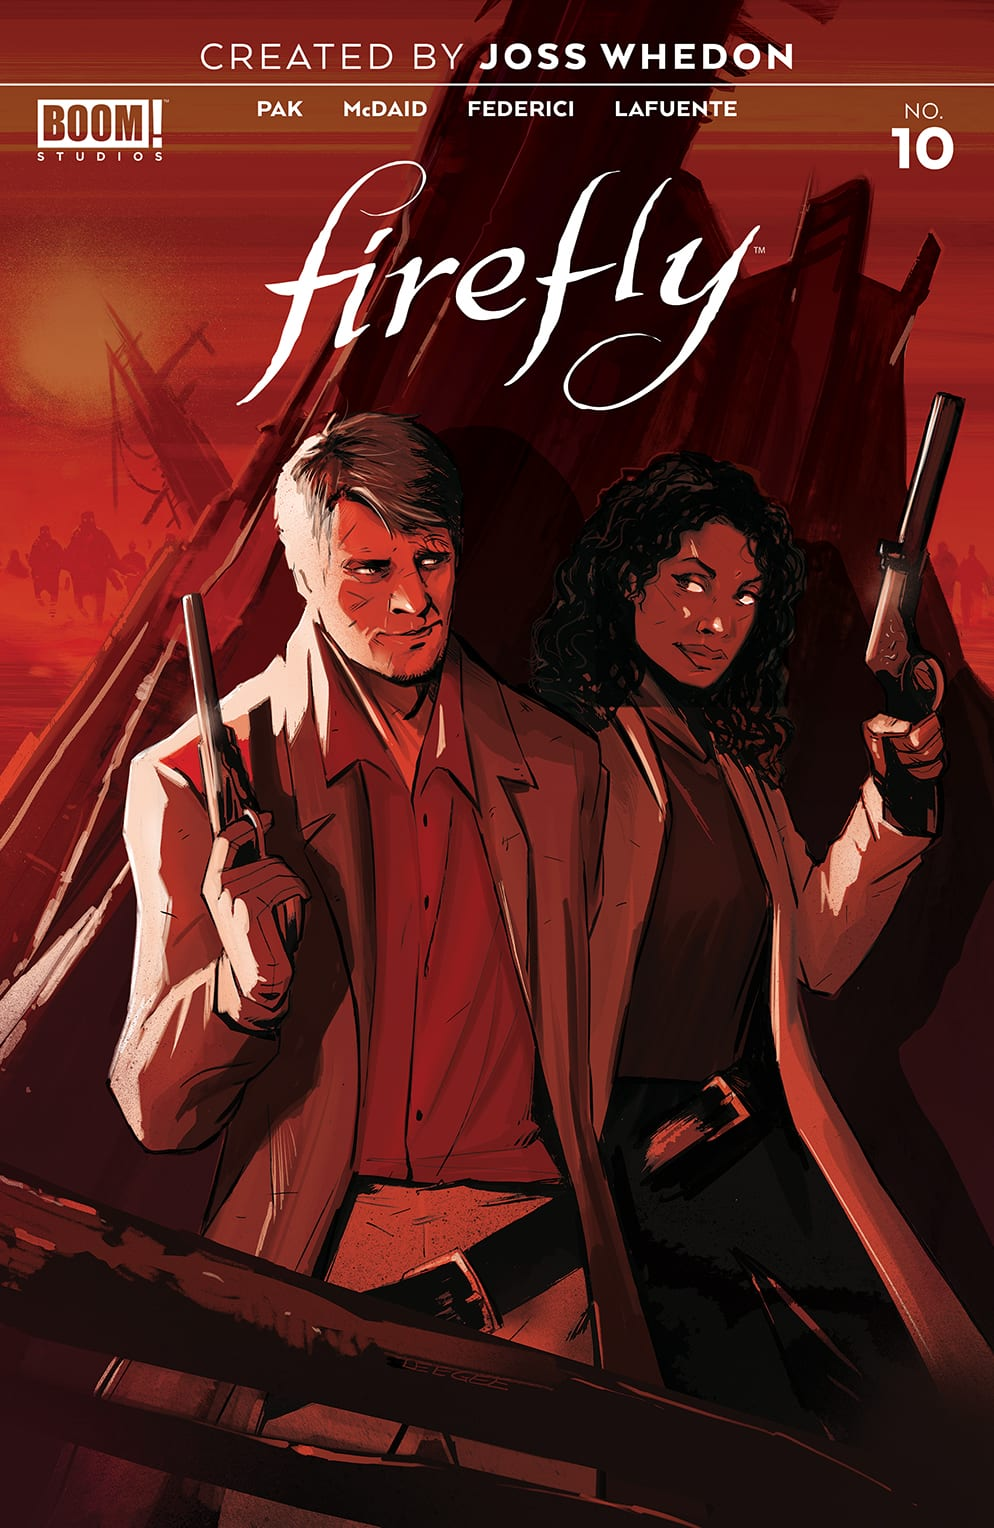 FIREFLY #10 Is A Strong Reminder The Battle Never Ends 1